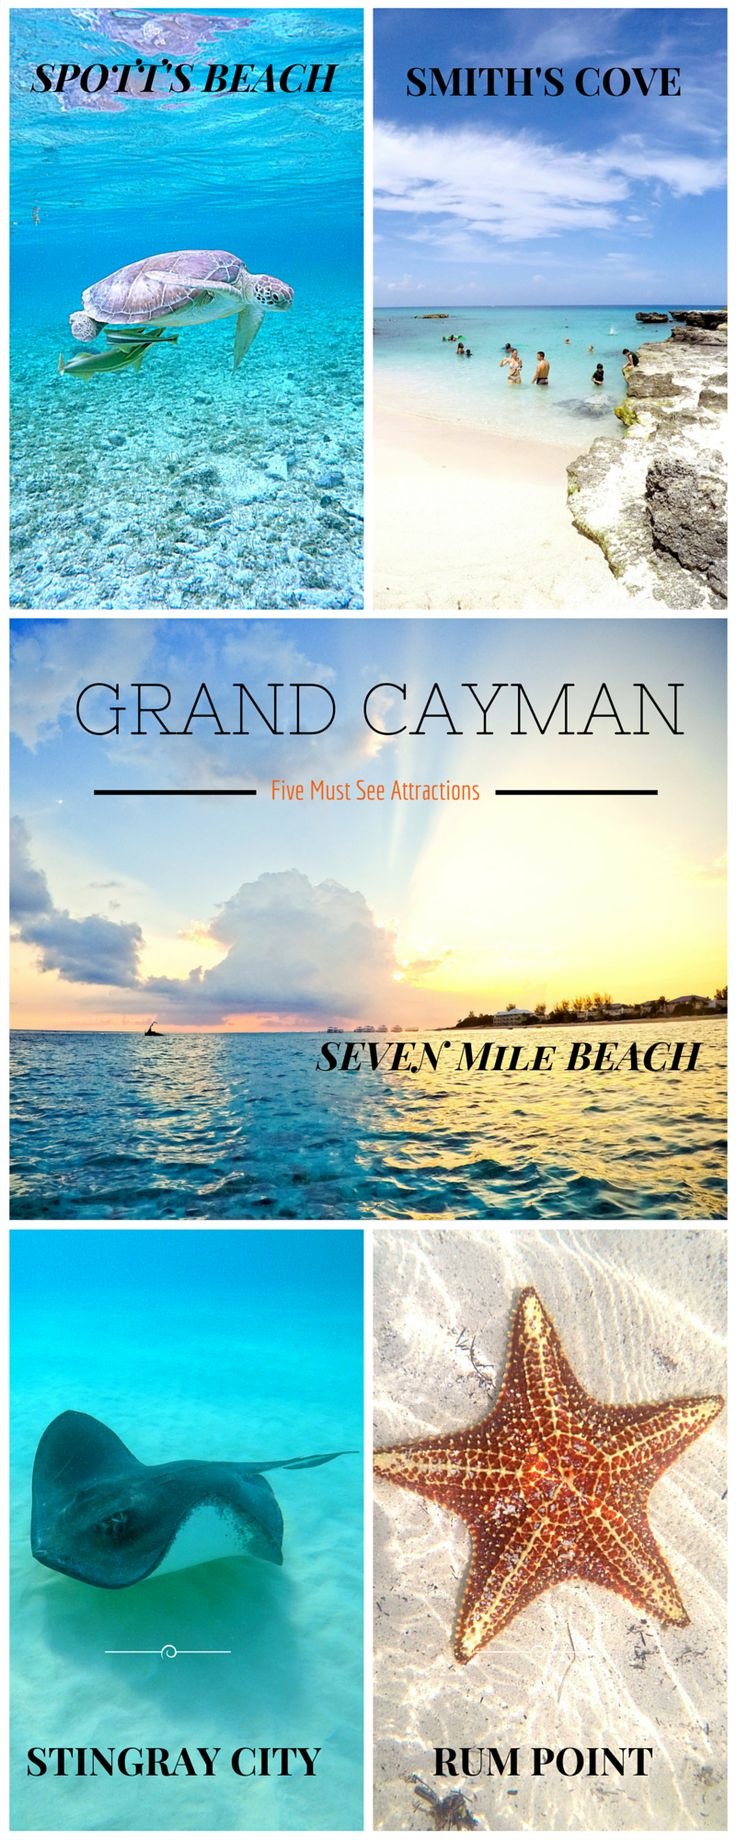 Grand Cayman's Top Five